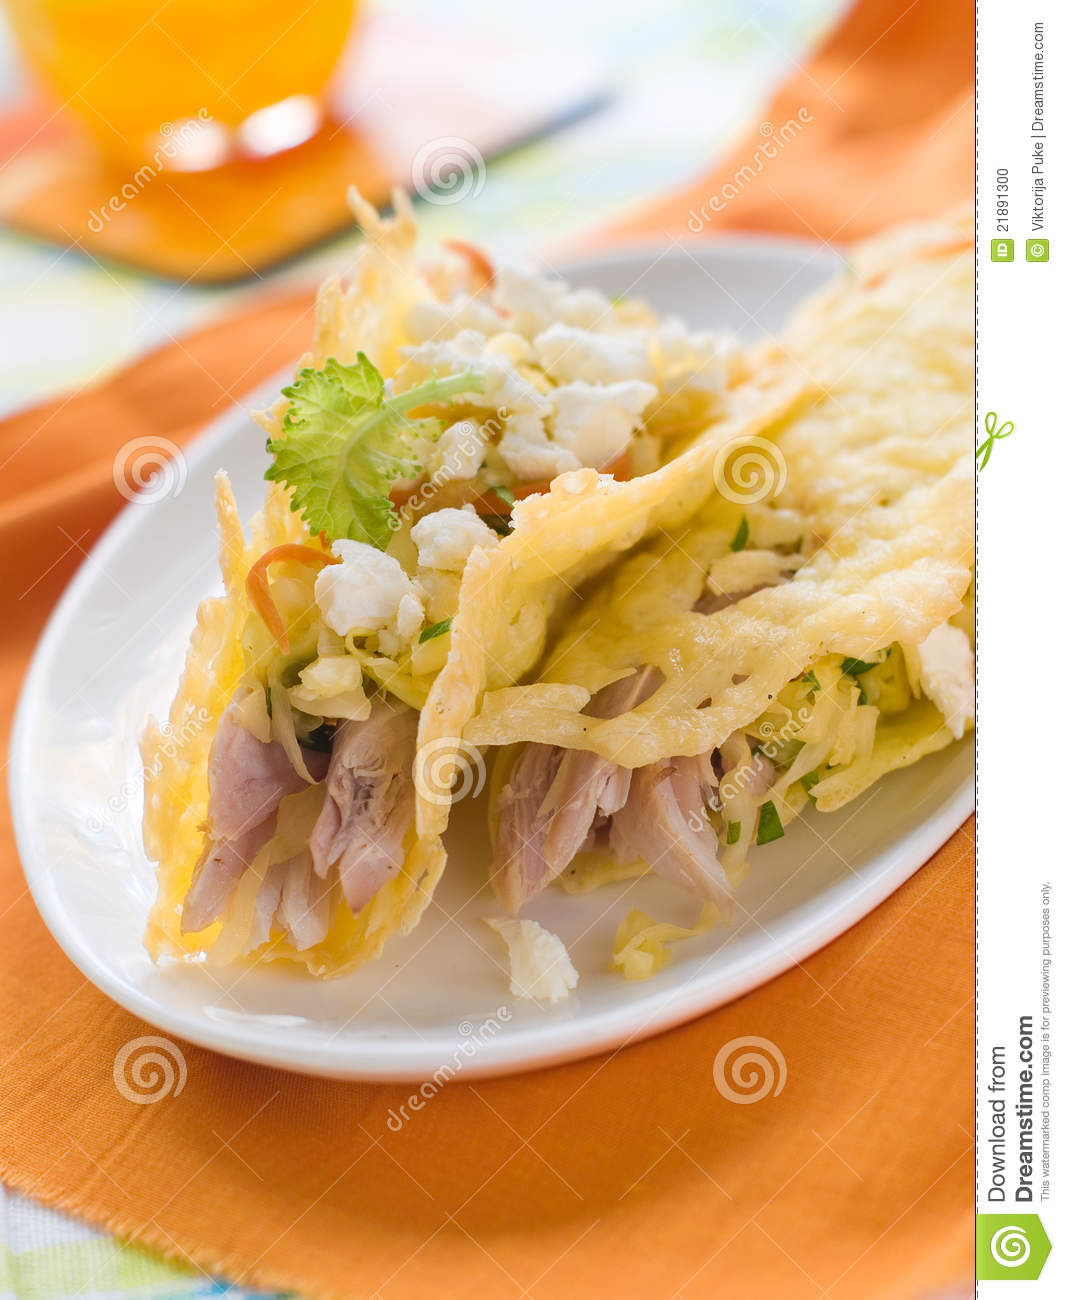 Cheese tacos with chicken and cabbage salad. Selective focus.